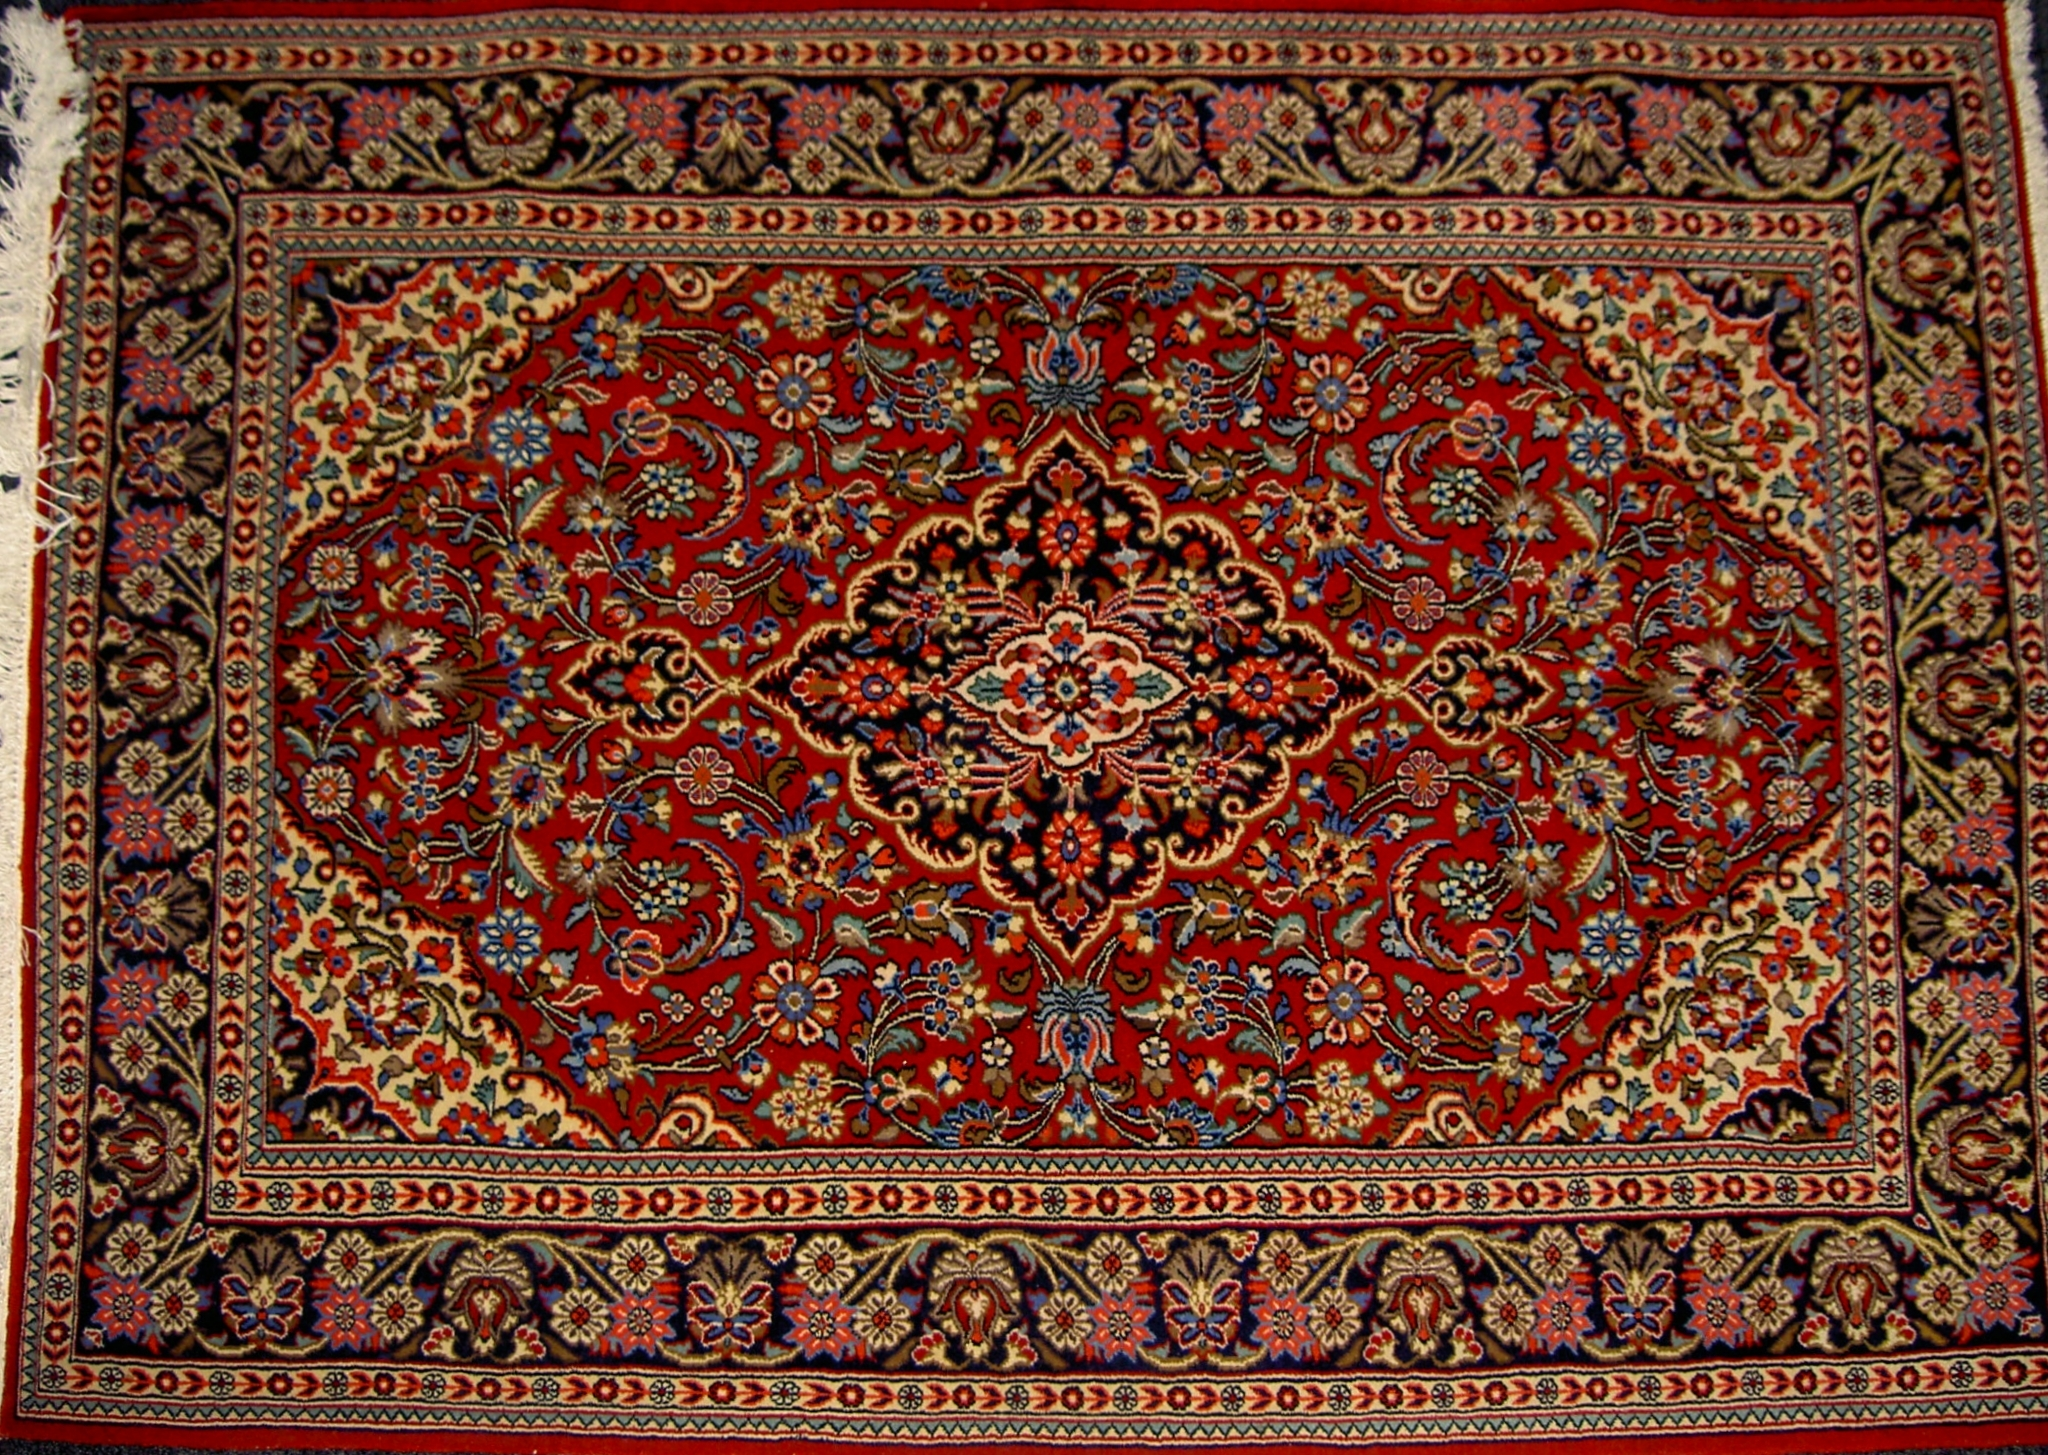 Rug From Qom Iran Design Lachak And Toranj Persiaqom Intended For Persian Rugs (Image 14 of 15)